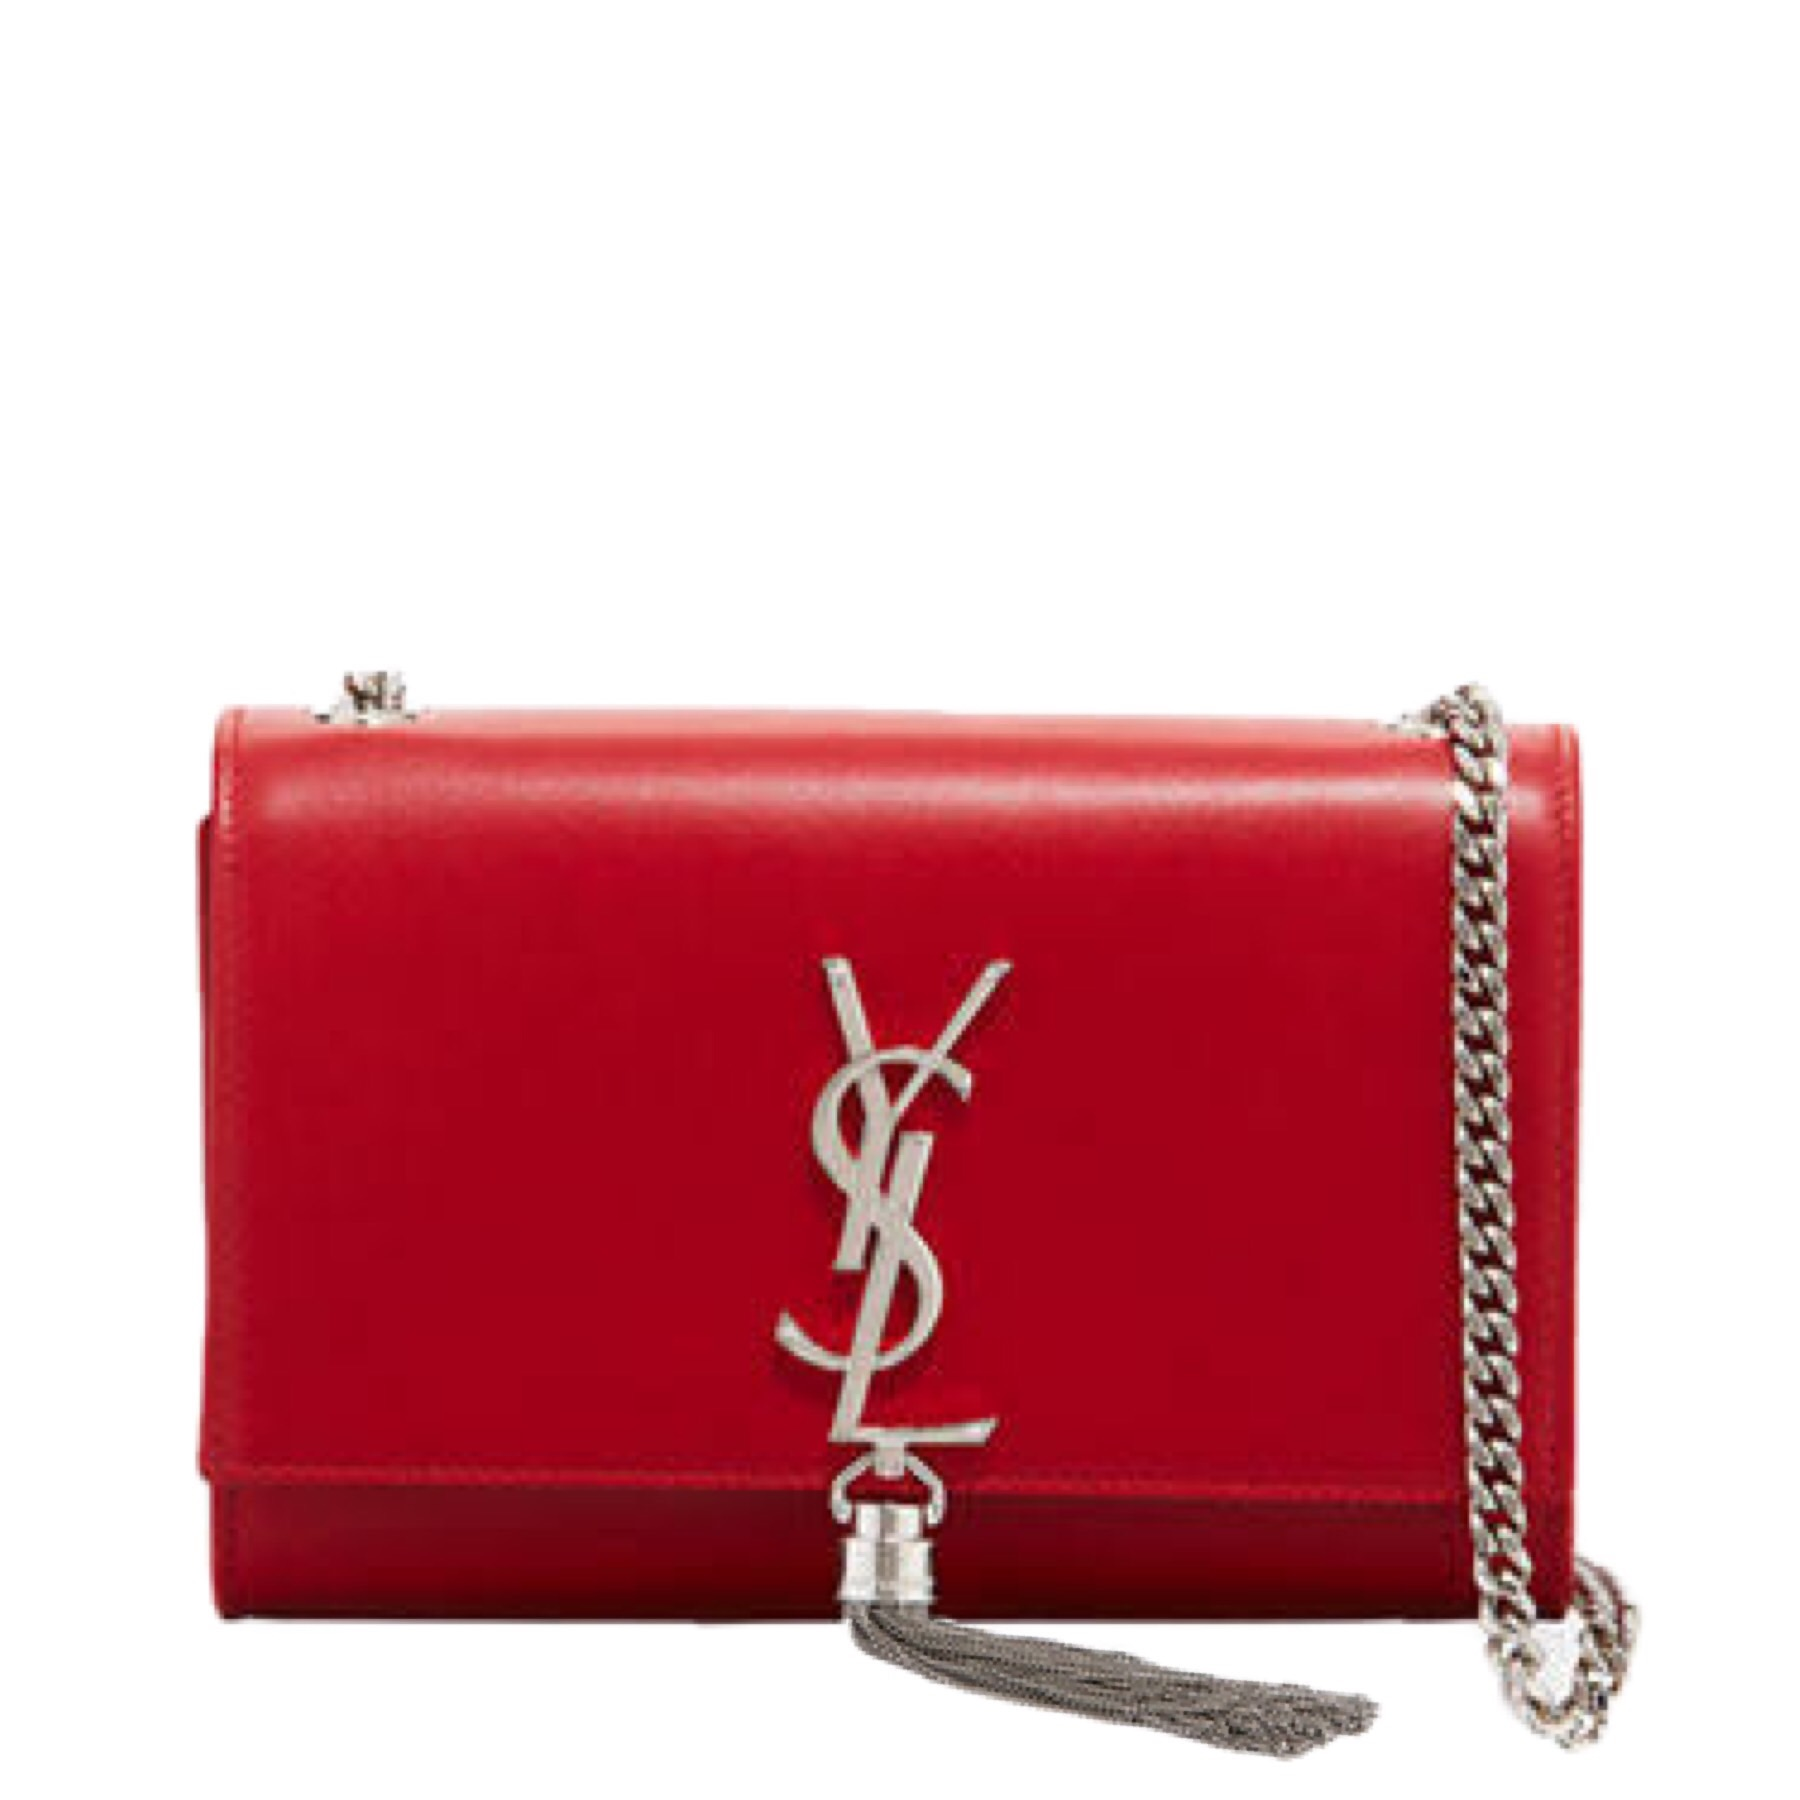 Ysl Small Kate Tassel Bag Eros Red Adorn Collection